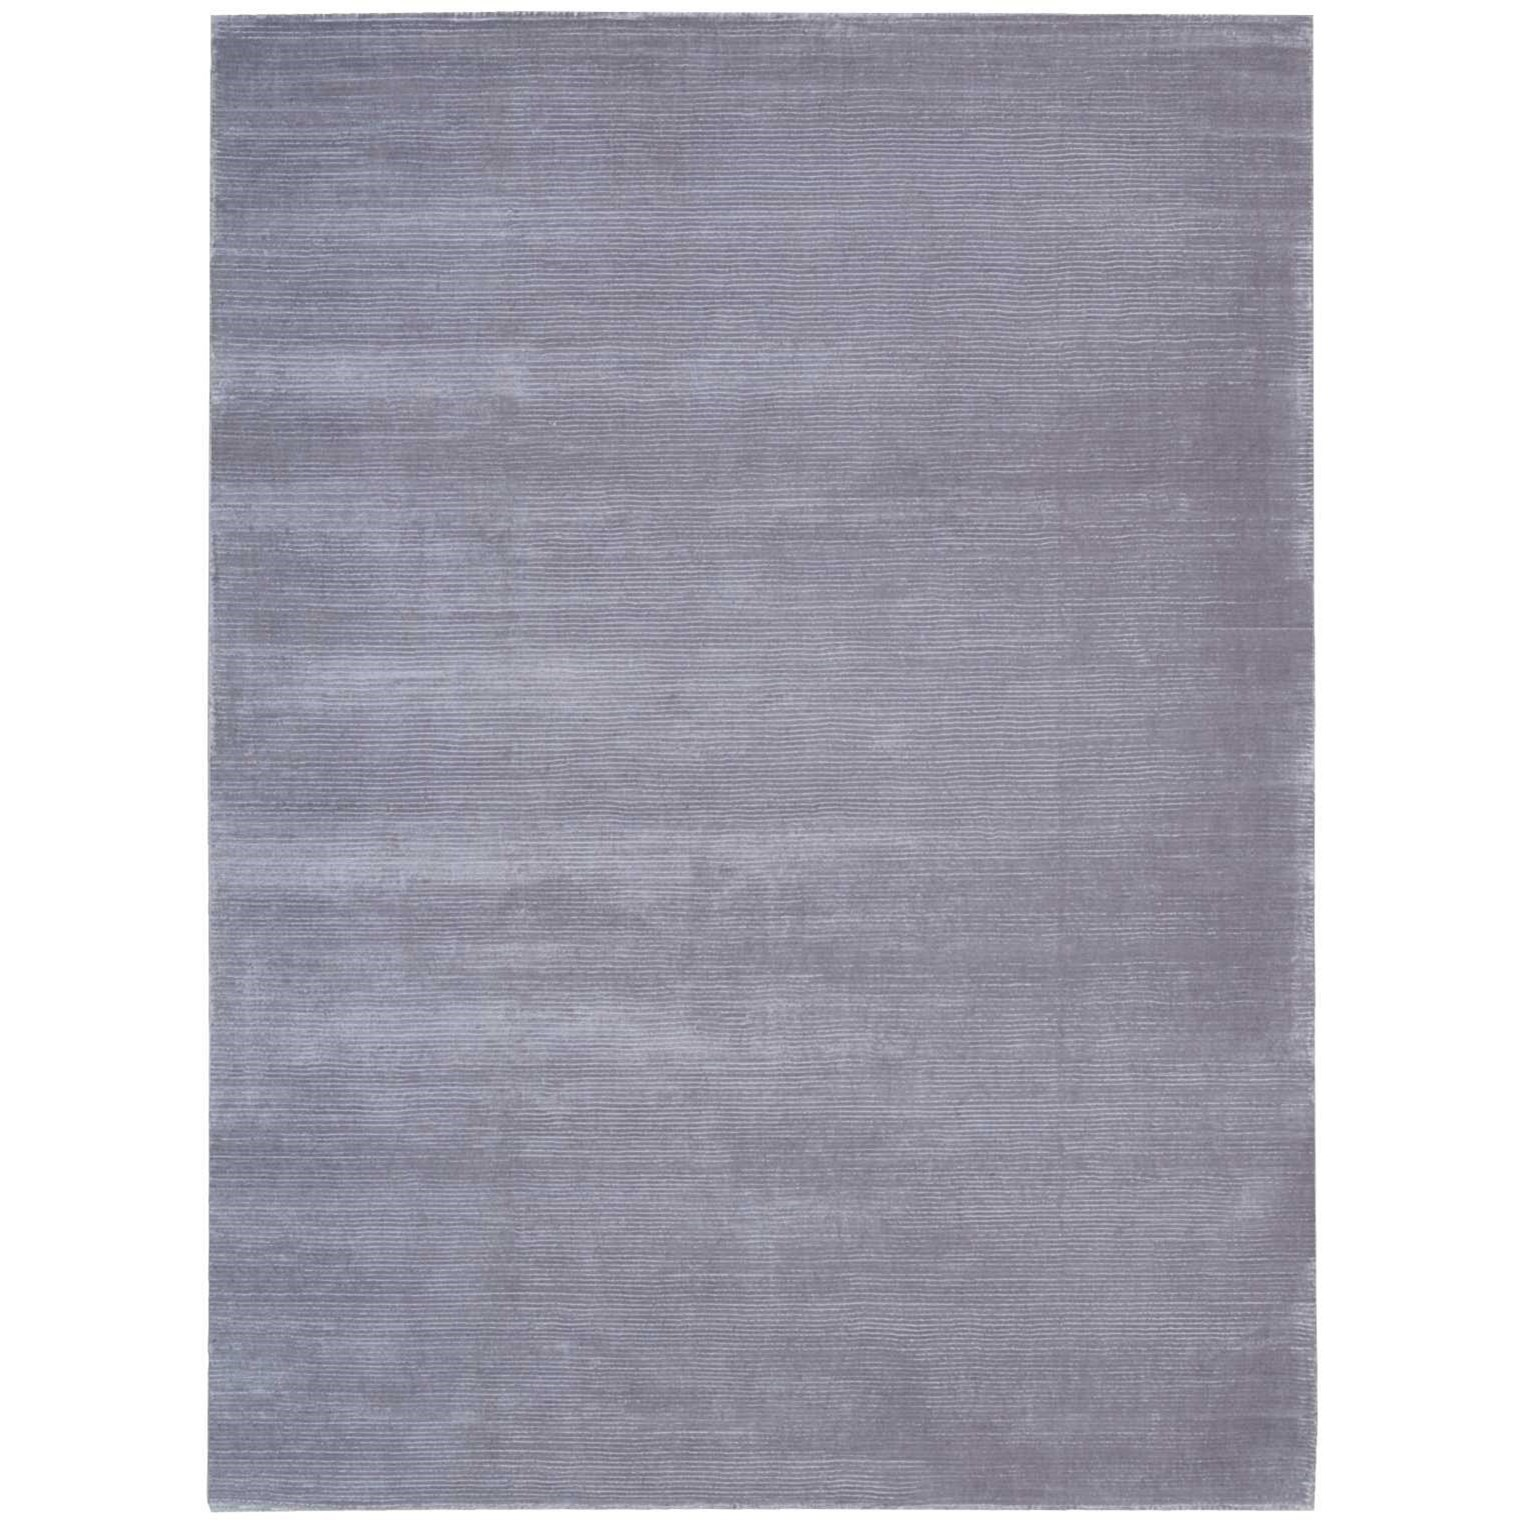 """Lunar 7'9"""" x 10'10"""" Rug by Calvin Klein Home by Nourison at Home Collections Furniture"""